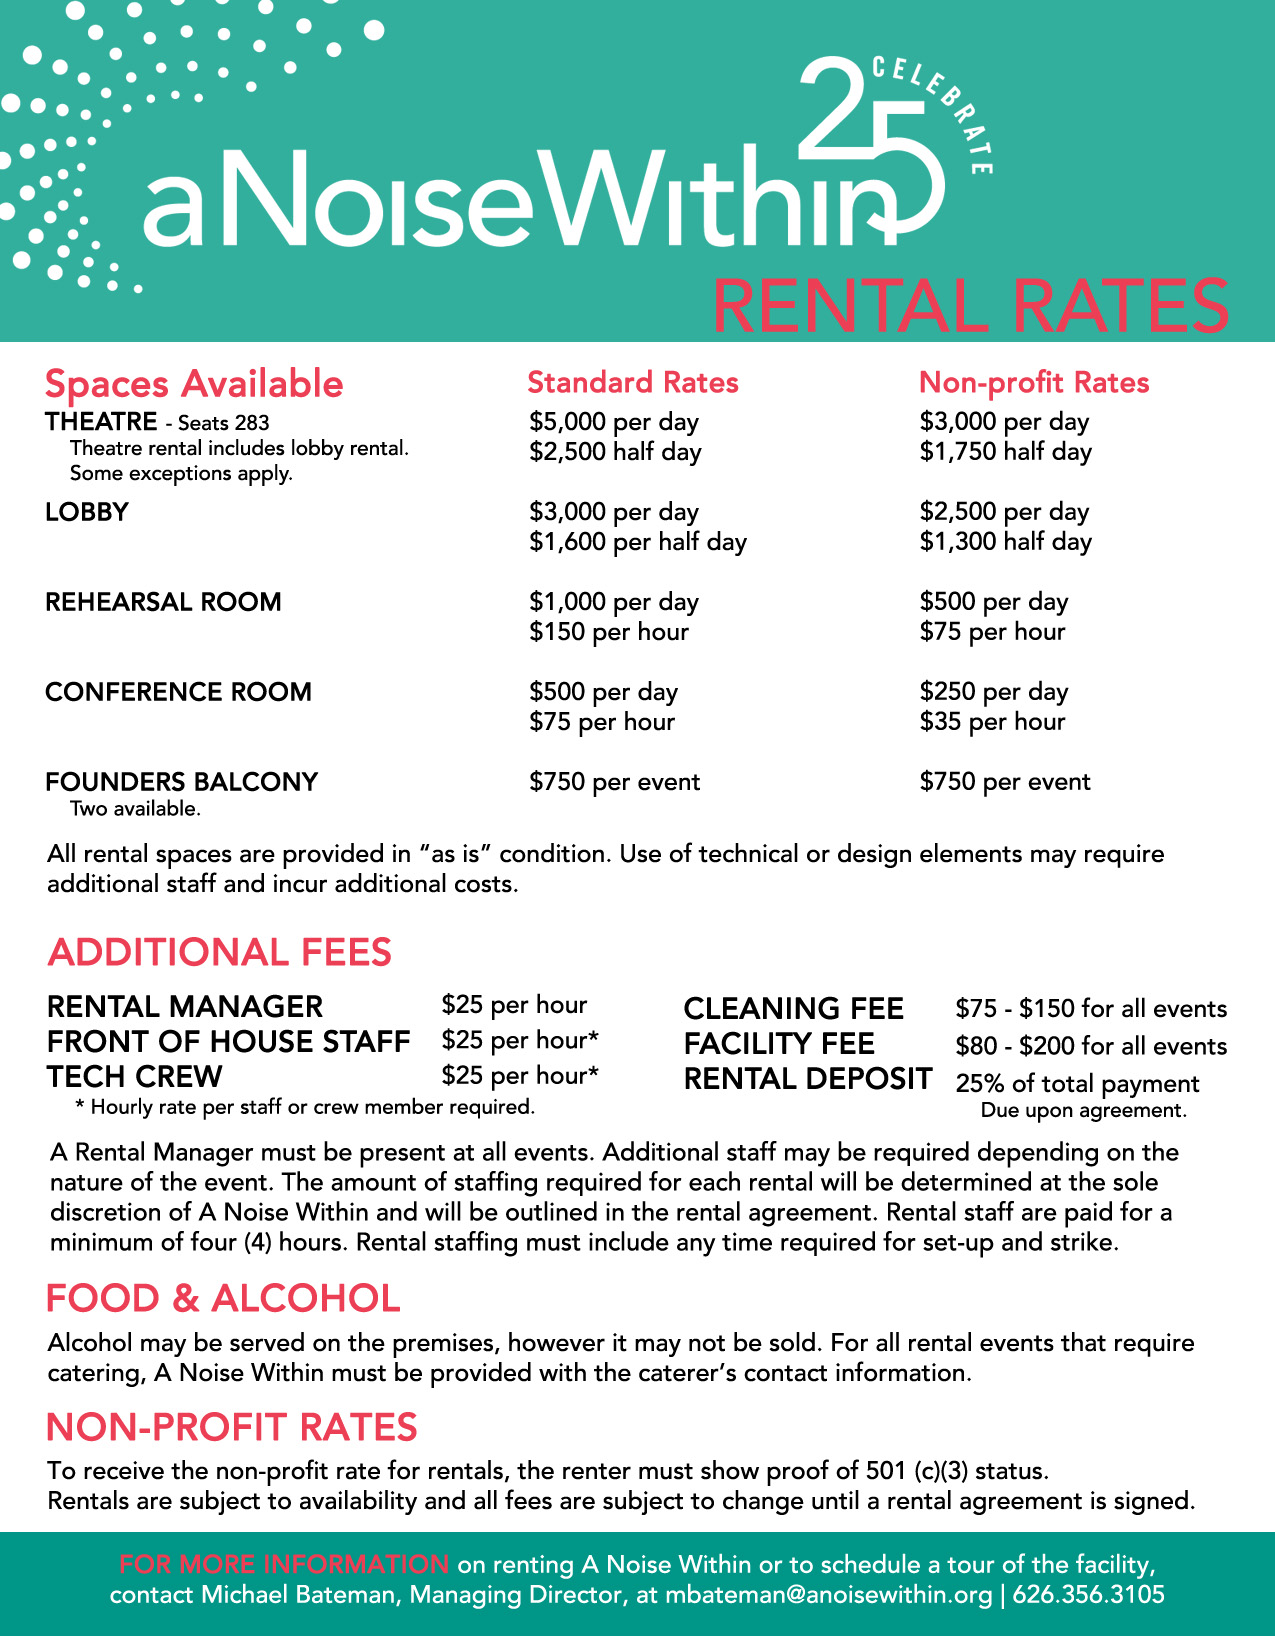 A Noise Within Theatre Rental Rates. Spaces available: Theatre, Lobby, Rehearsal Room, Conference Room, Founders Balcony. Standard and Non-profit Rates available. Call 626.356.3105 for more information. A Noise Within is located at 3352 E Foothill Blvd, Pasadena, CA 91107.